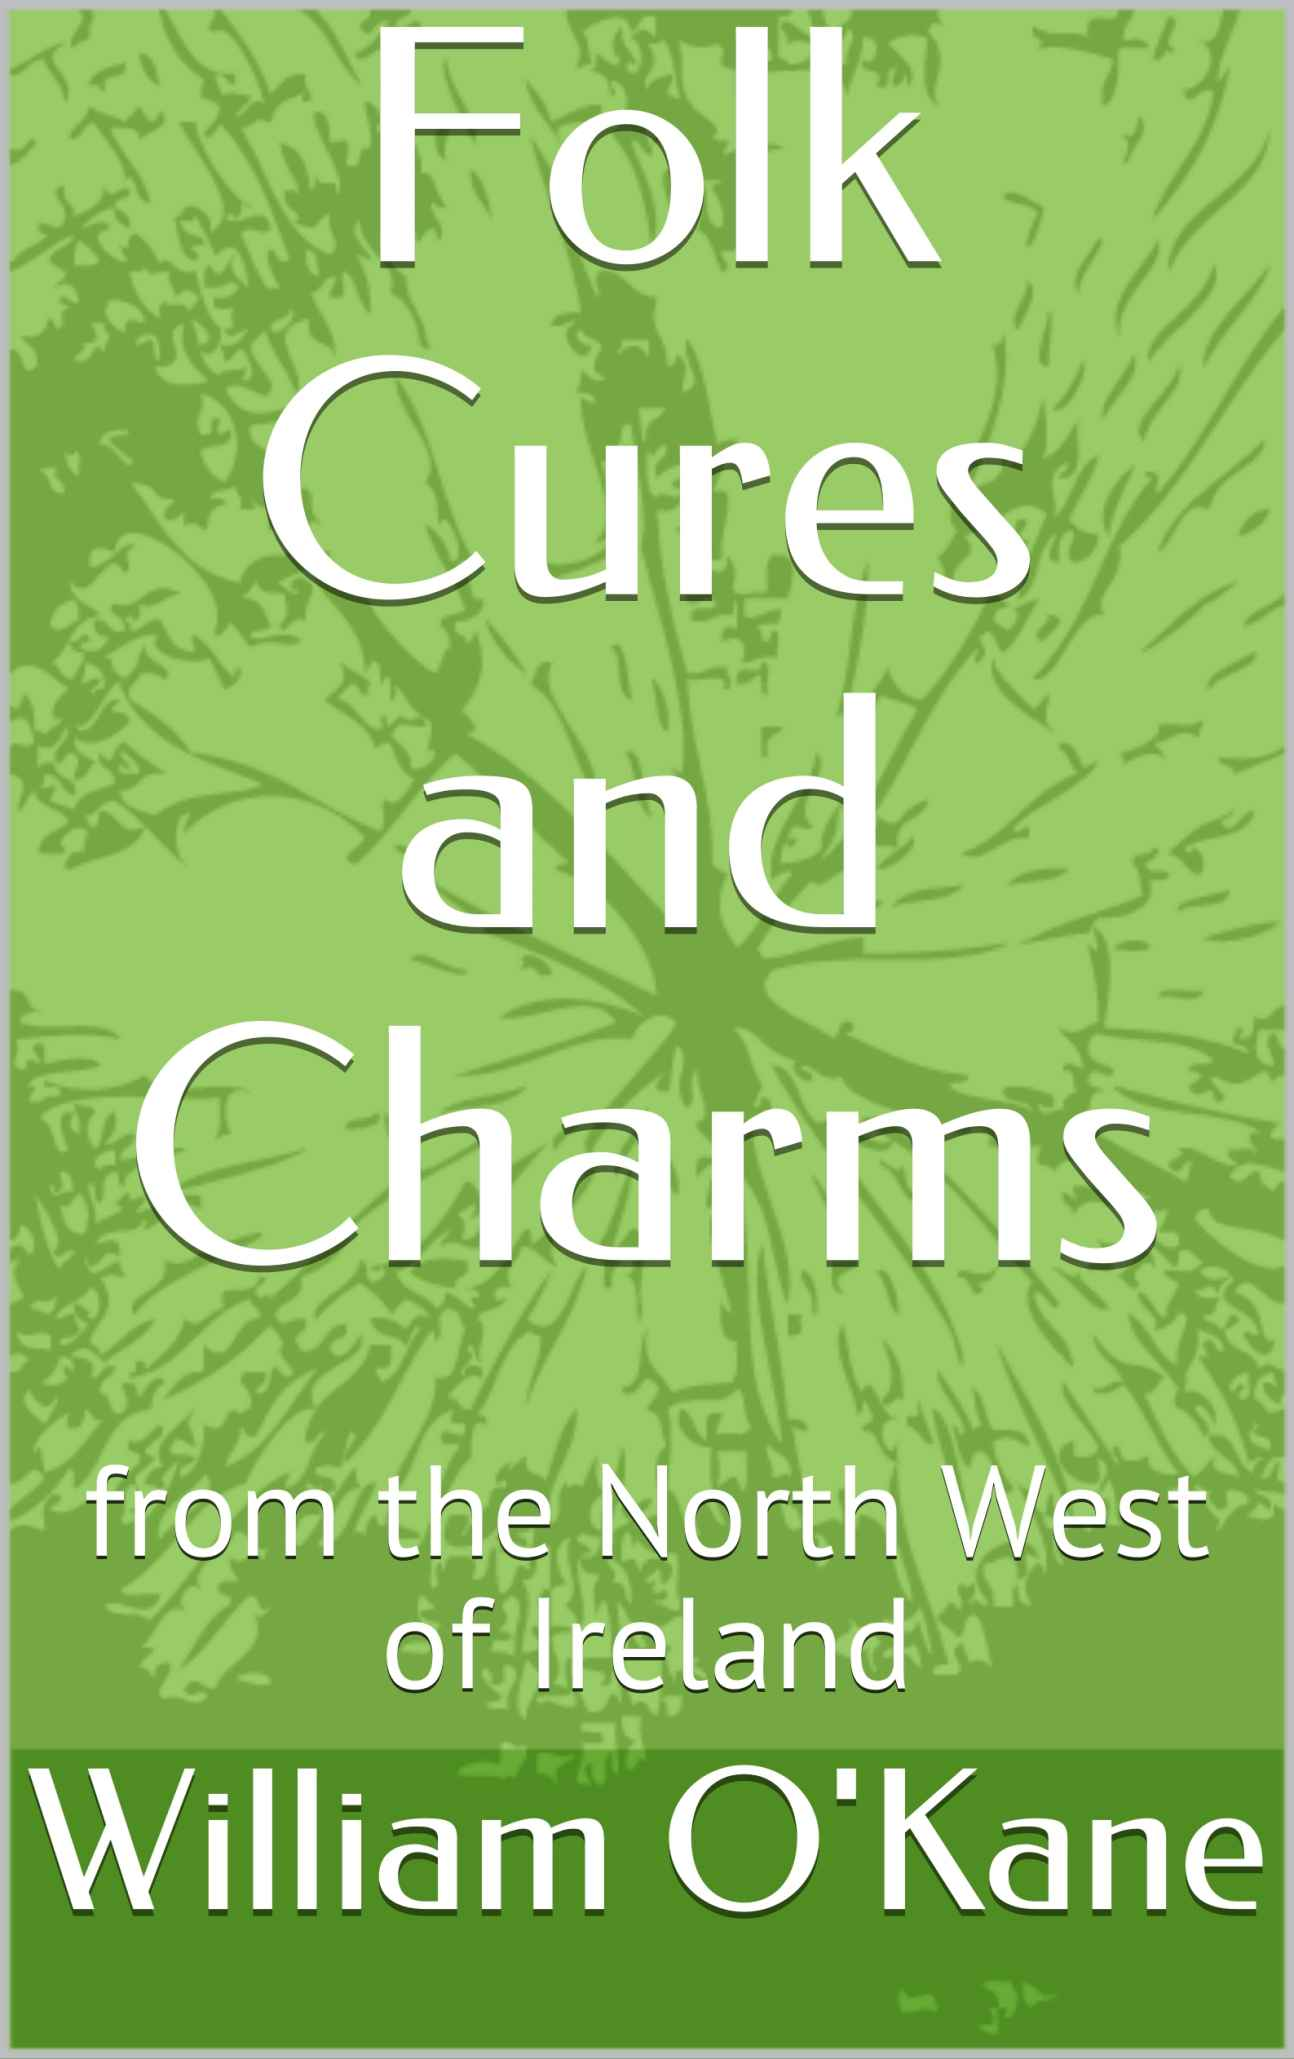 IrishFolkCures